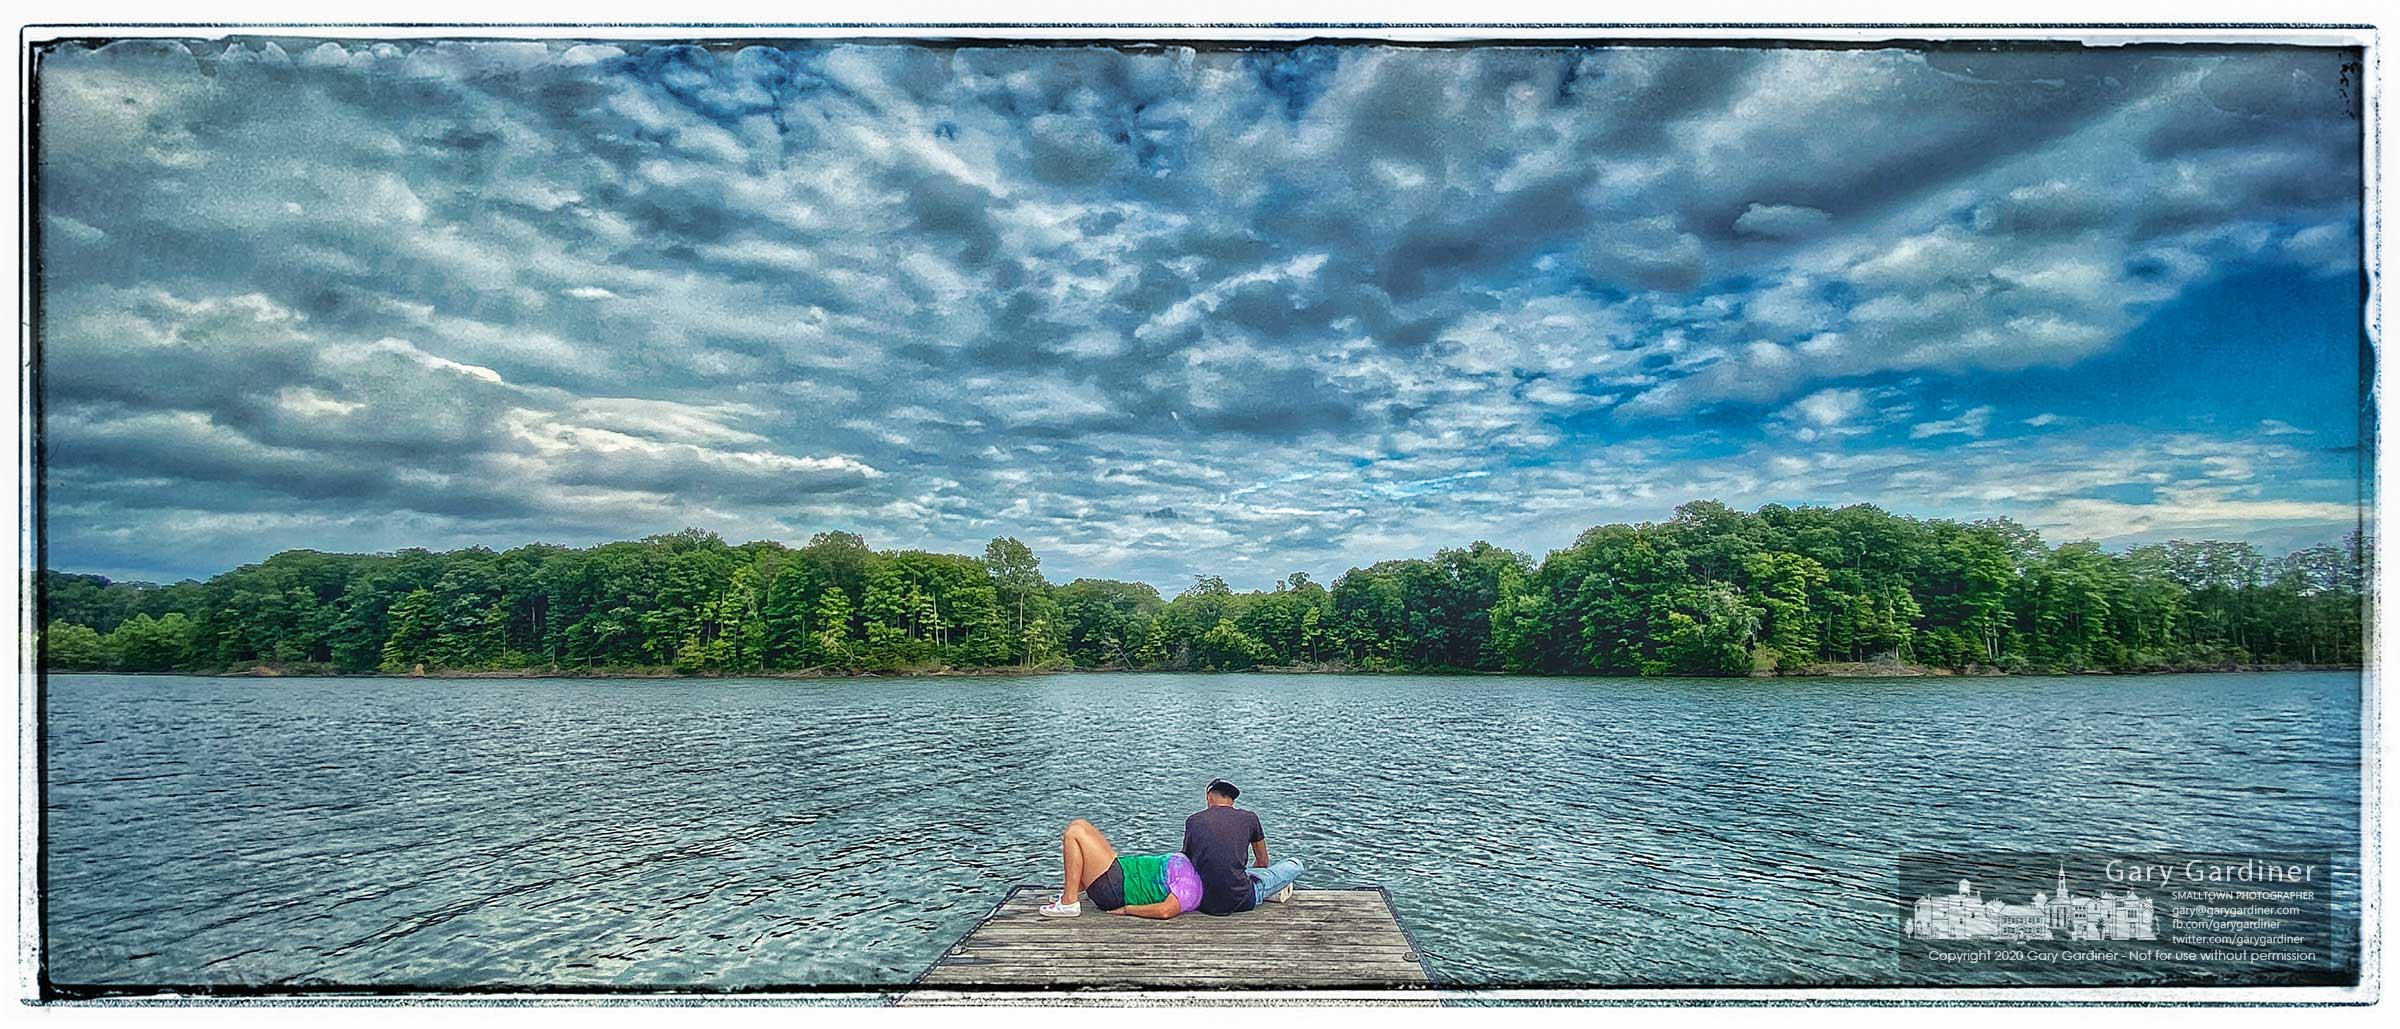 A couple takes a moment to enjoy the quiet time before sunset and the return of anglers and their boats returning to the docks at Alum Creek Lake. My Final Photo for Aug. 2, 2020.